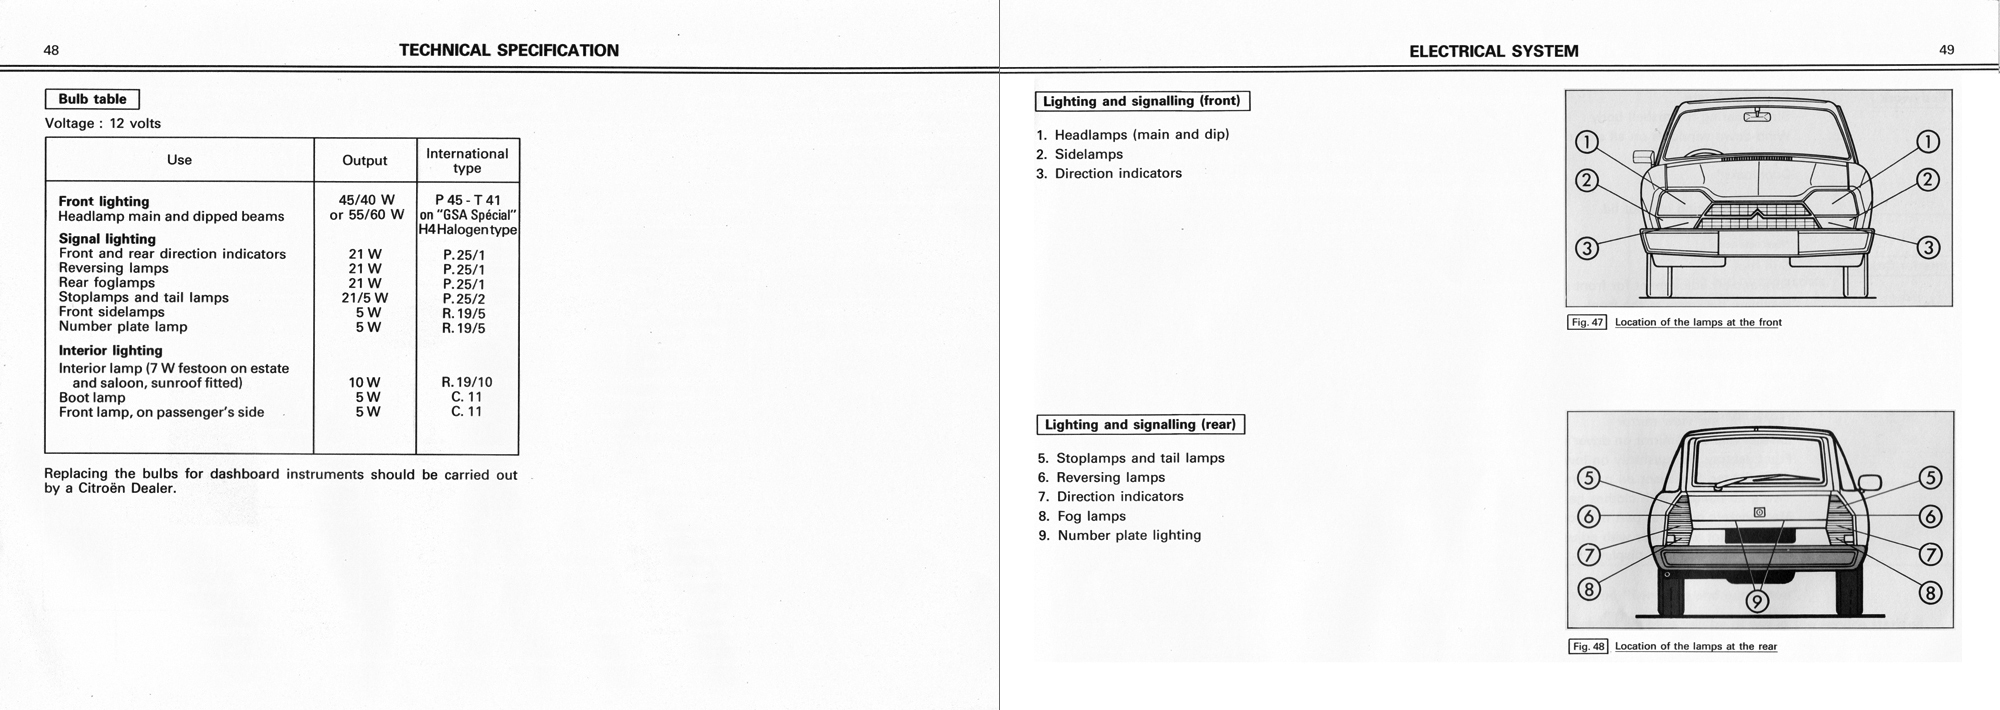 1982 Citroën GSA owner's manual Page 2/title>